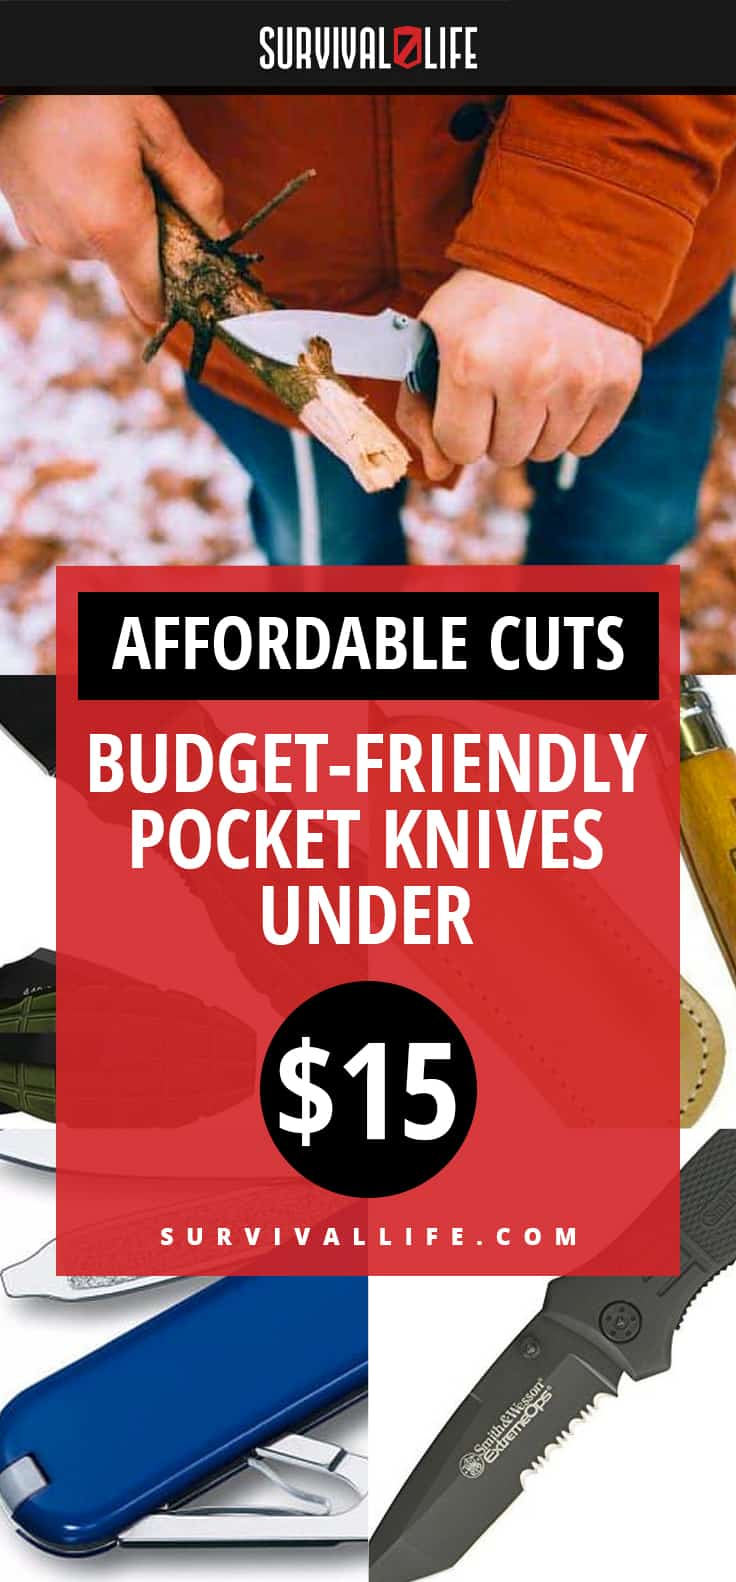 Affordable Cuts | Budget-Friendly Pocket Knives Under $15